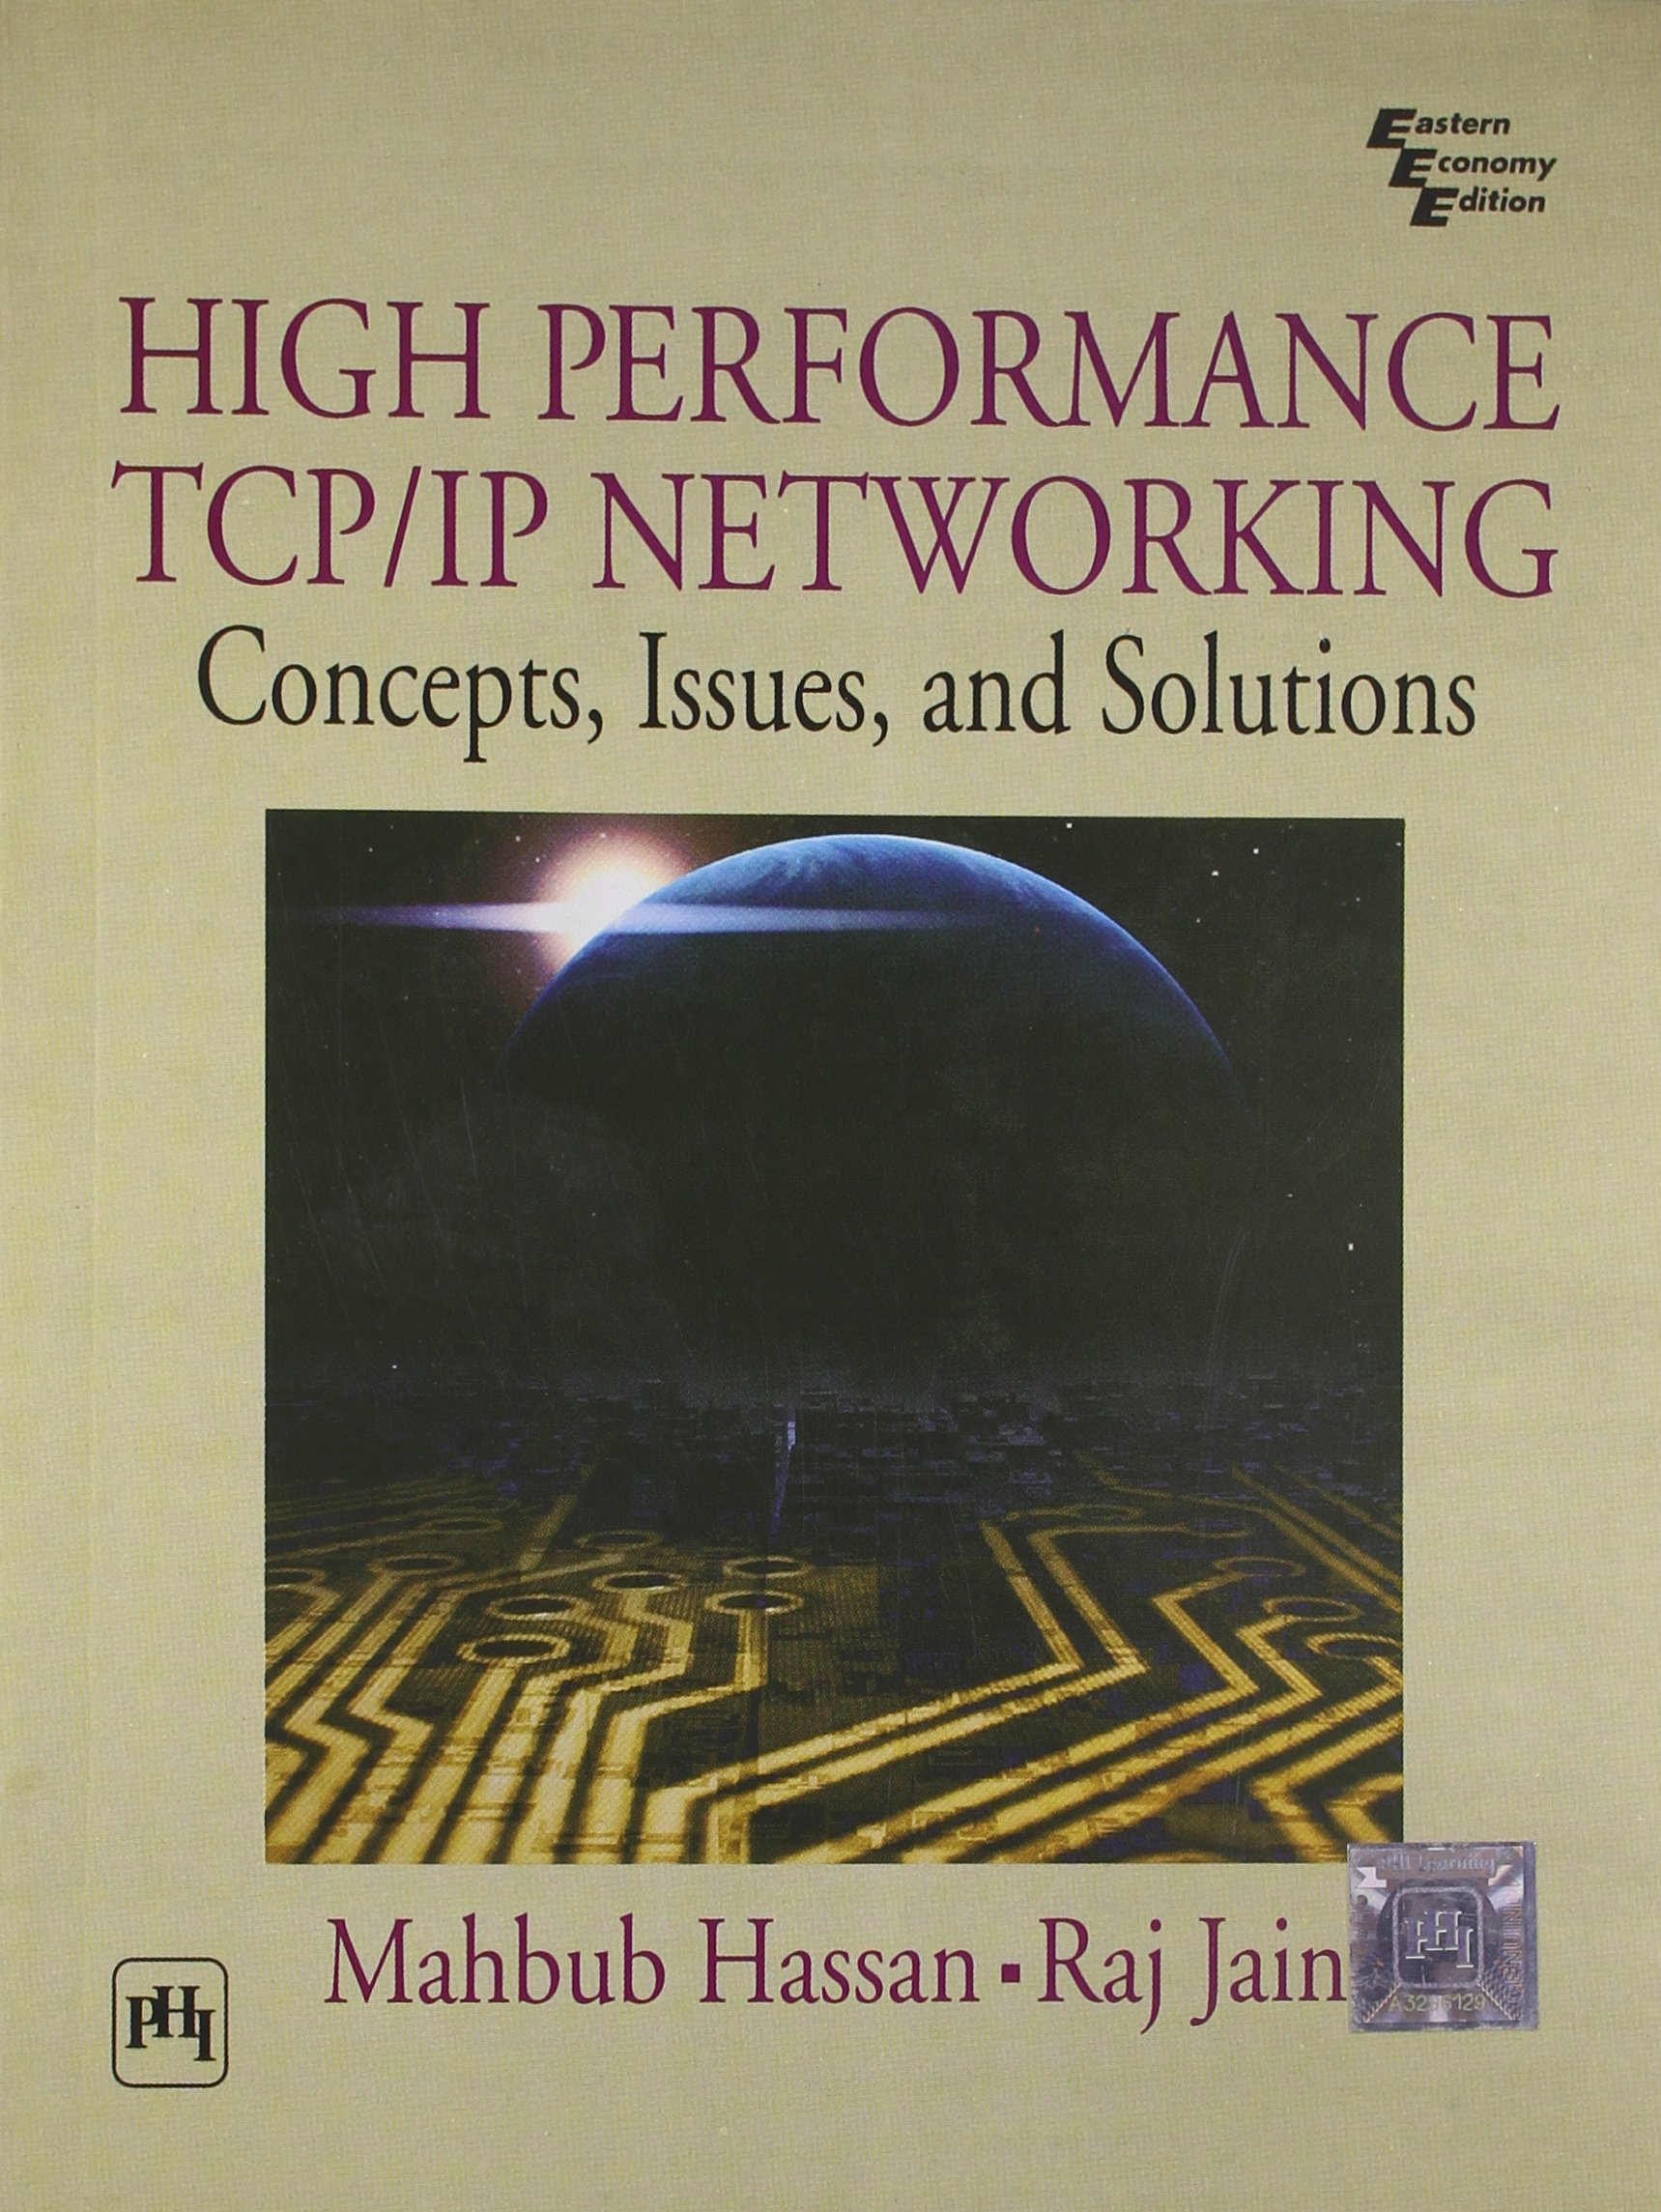 High Performance Tcp/Ip Networking: Concepts, Issues, And Solutions PDF